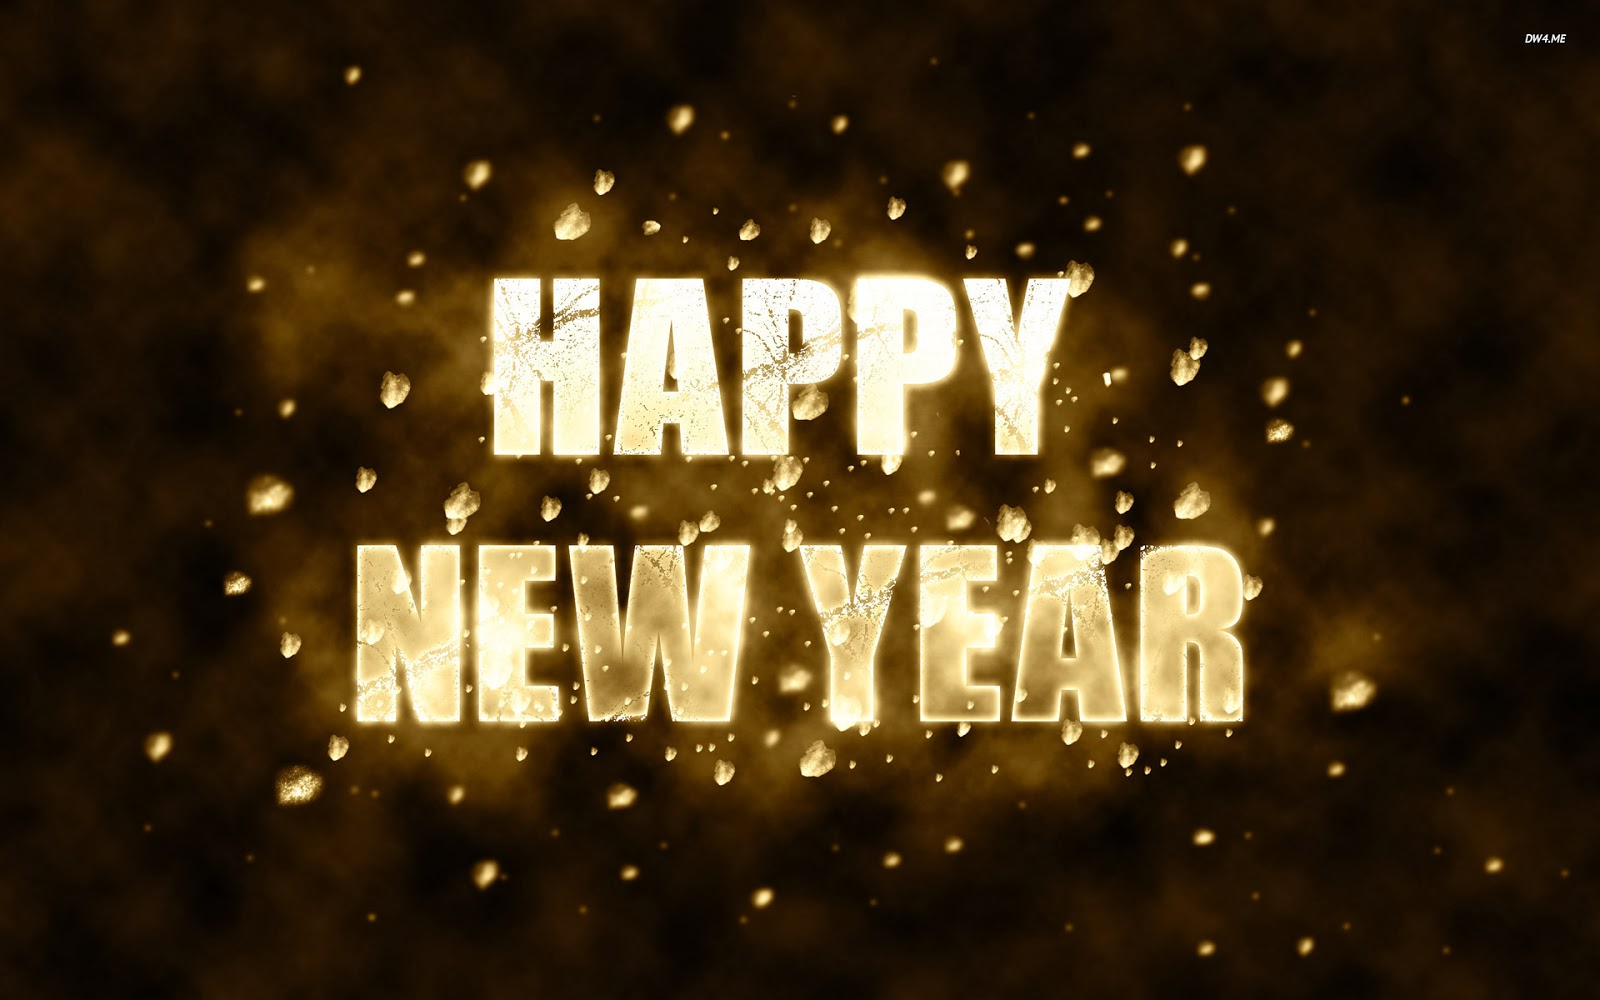 New year 2014 greetings ecards free download greeting card 2014 happy new year 2014 happy new year 2014 m4hsunfo